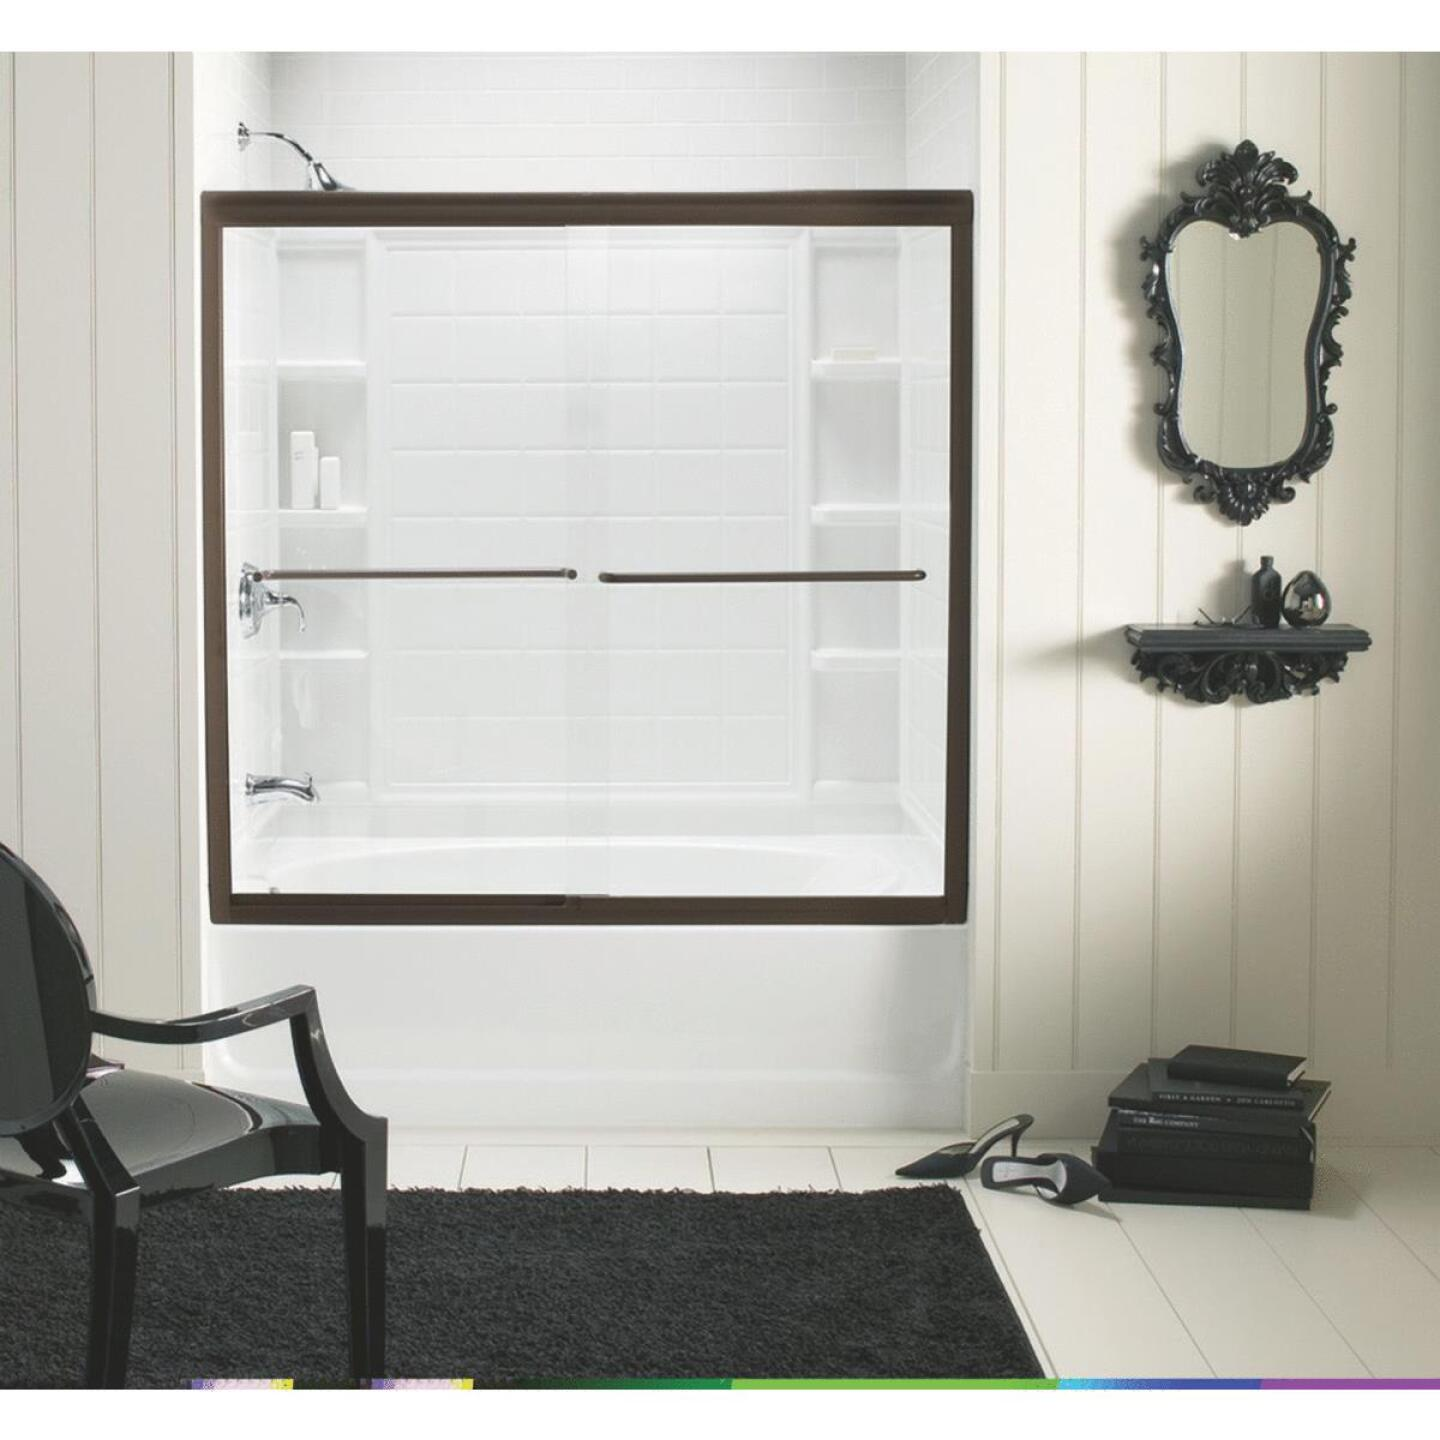 Sterling Finesse 59-5/8 In. W. X 55-3/4 In. H. Bronze Semi-Frameless Clear Glass Sliding Tub Door Image 1